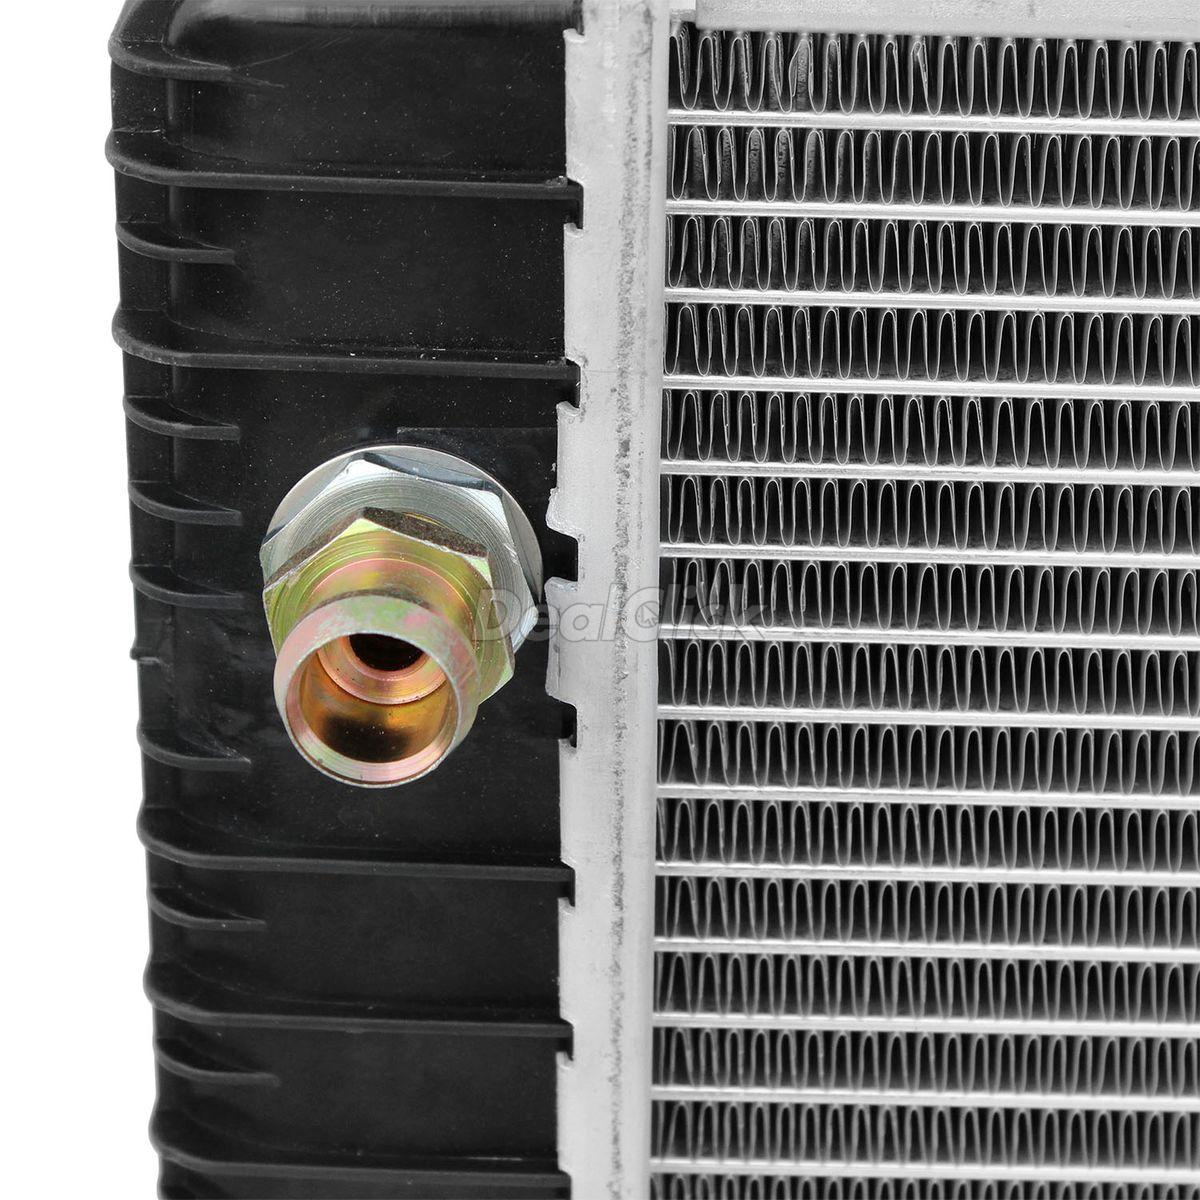 STAYCO Aluminum Radiator for 1998 Volvo V70 C70 S70 | eBay